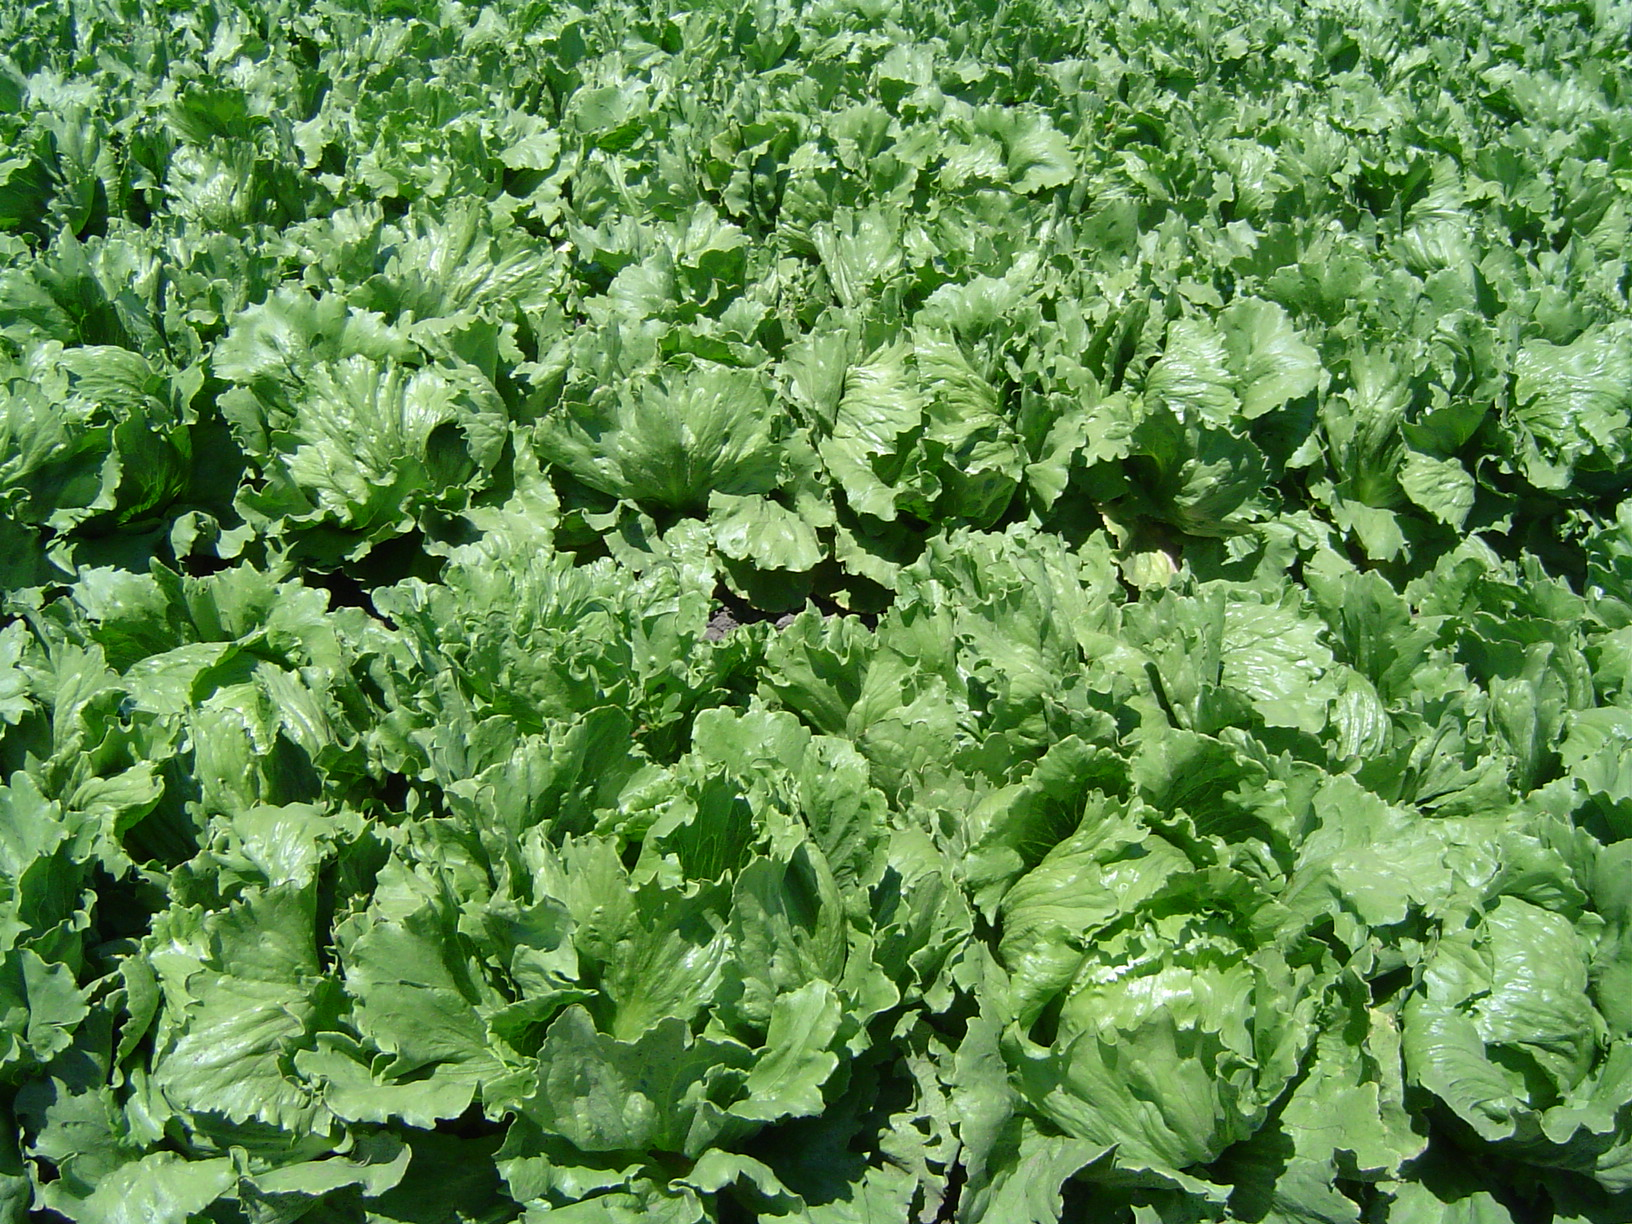 Lettuce Mild in flavour, it has been described over the centuries as a cooling counterbalance to other ingredients in a salad The lettuce that we see today actually started out as a weed around the Mediterranean basin. Served in dishes for more than 4500 years, lettuce has certainly made its mark in...